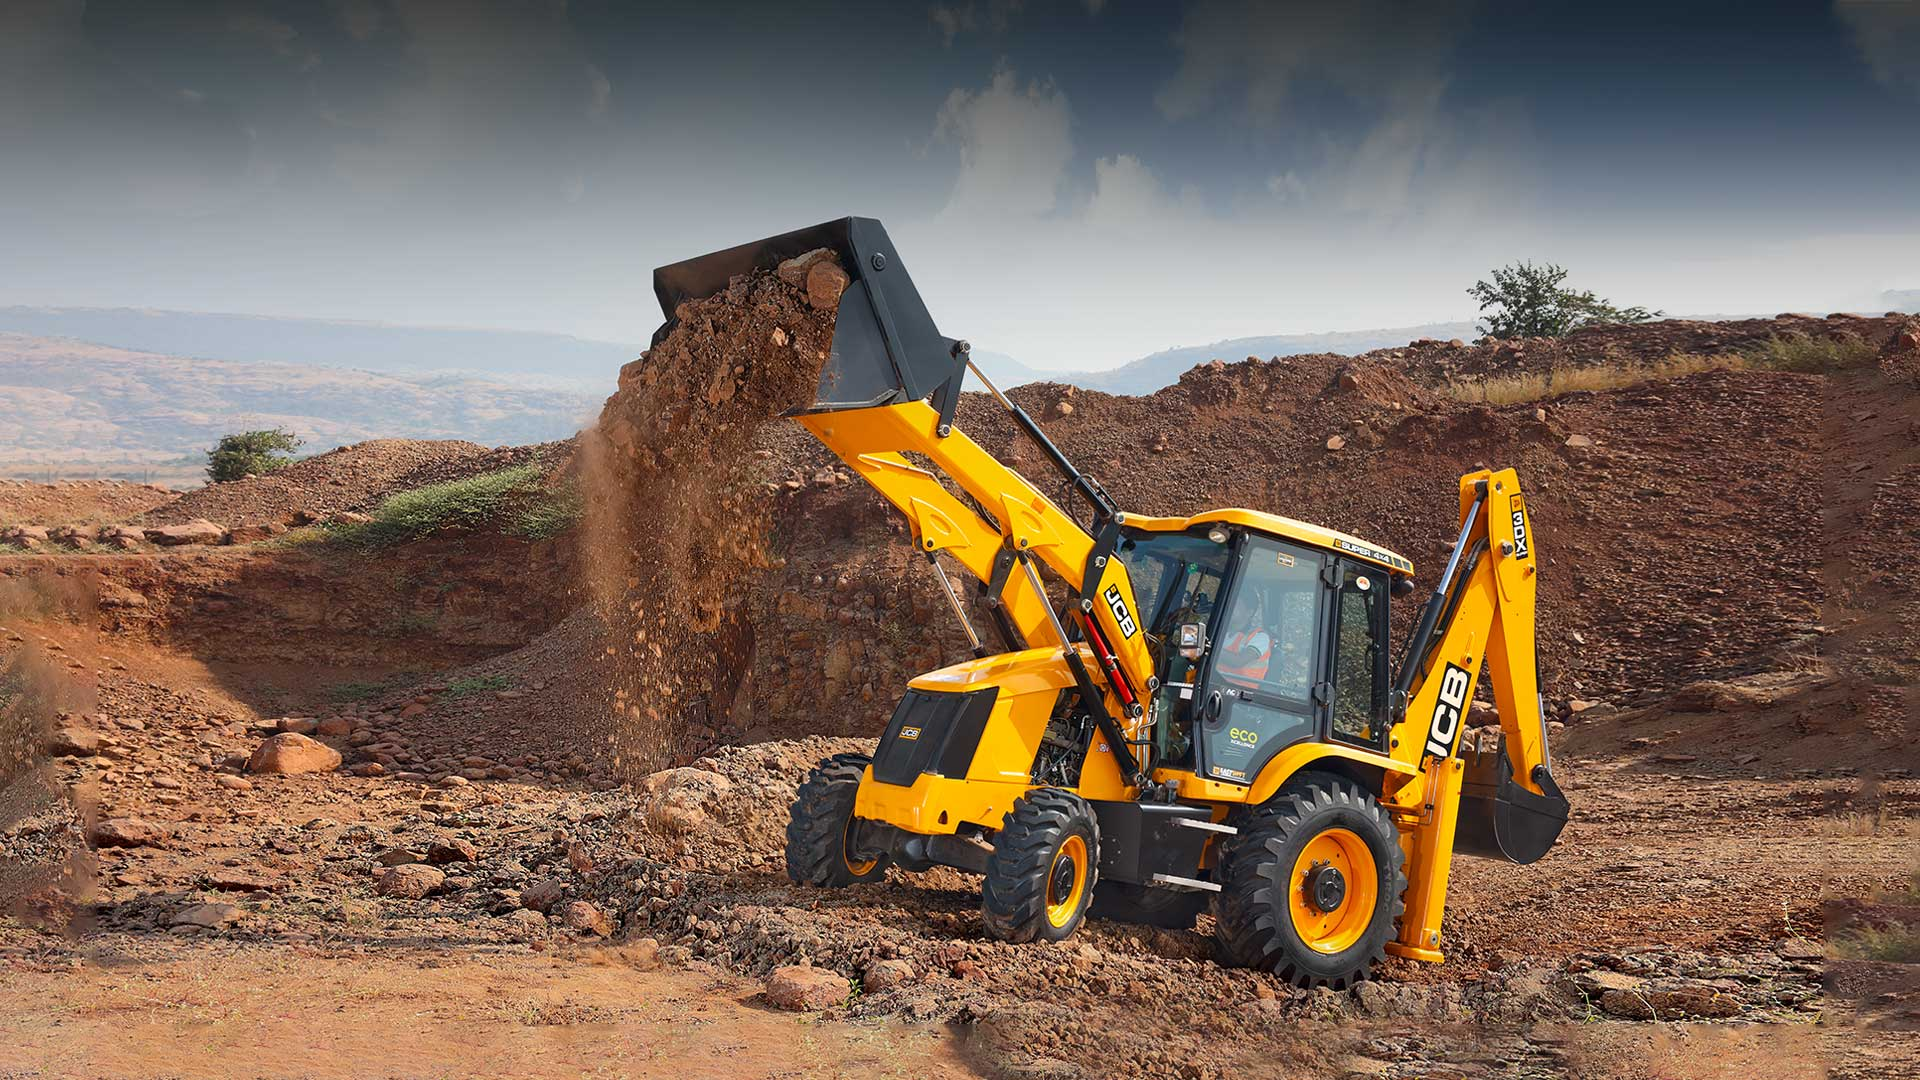 SENOK - Construction Machinery & Equipment